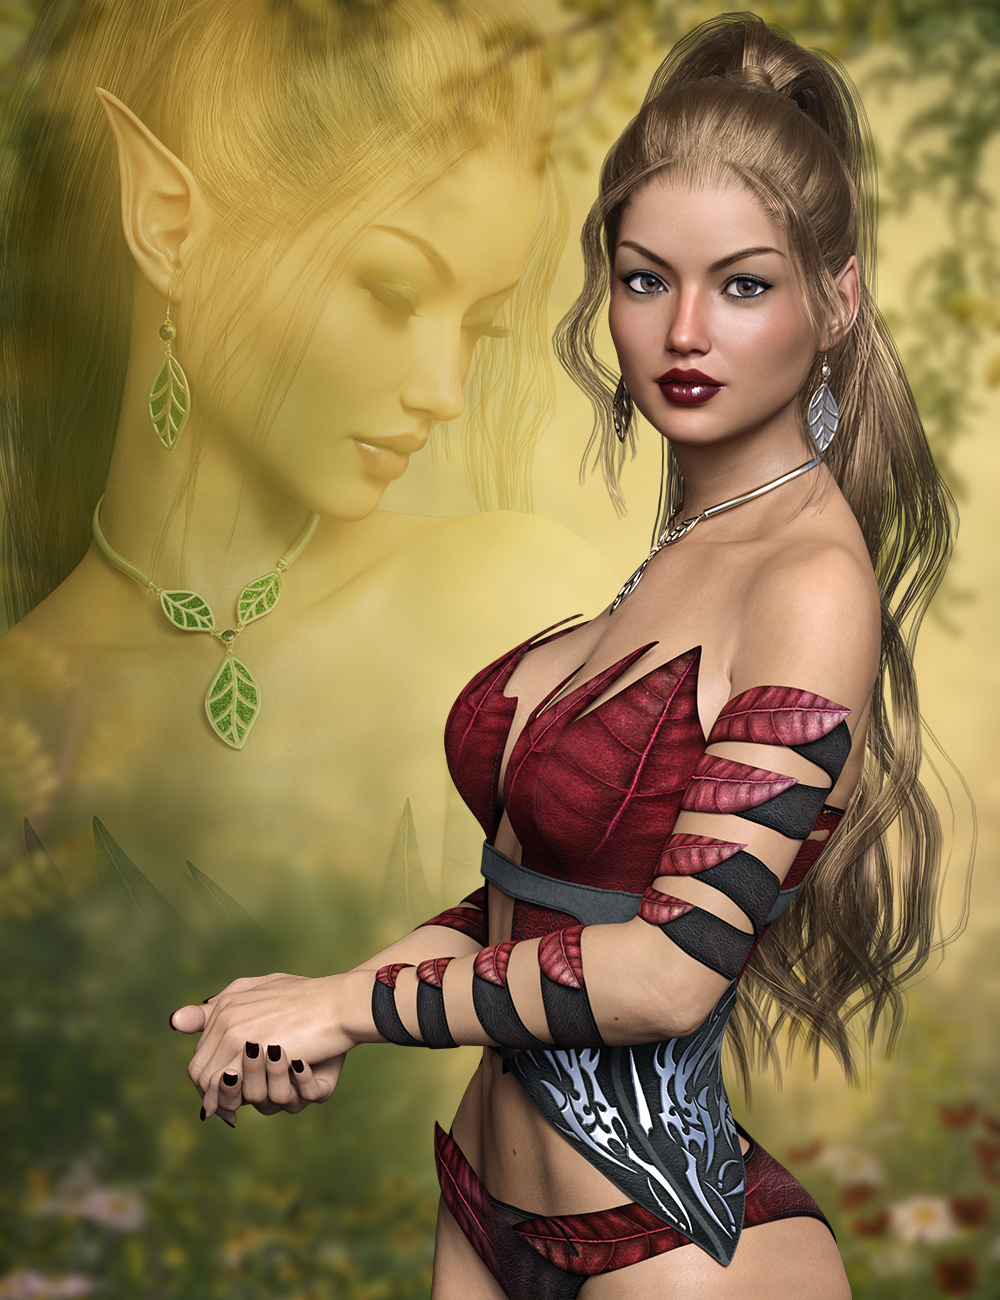 FWSA Vanessa HD for Victoria 7 and her Jewelry by: Fred Winkler ArtSabbyFisty & Darc, 3D Models by Daz 3D